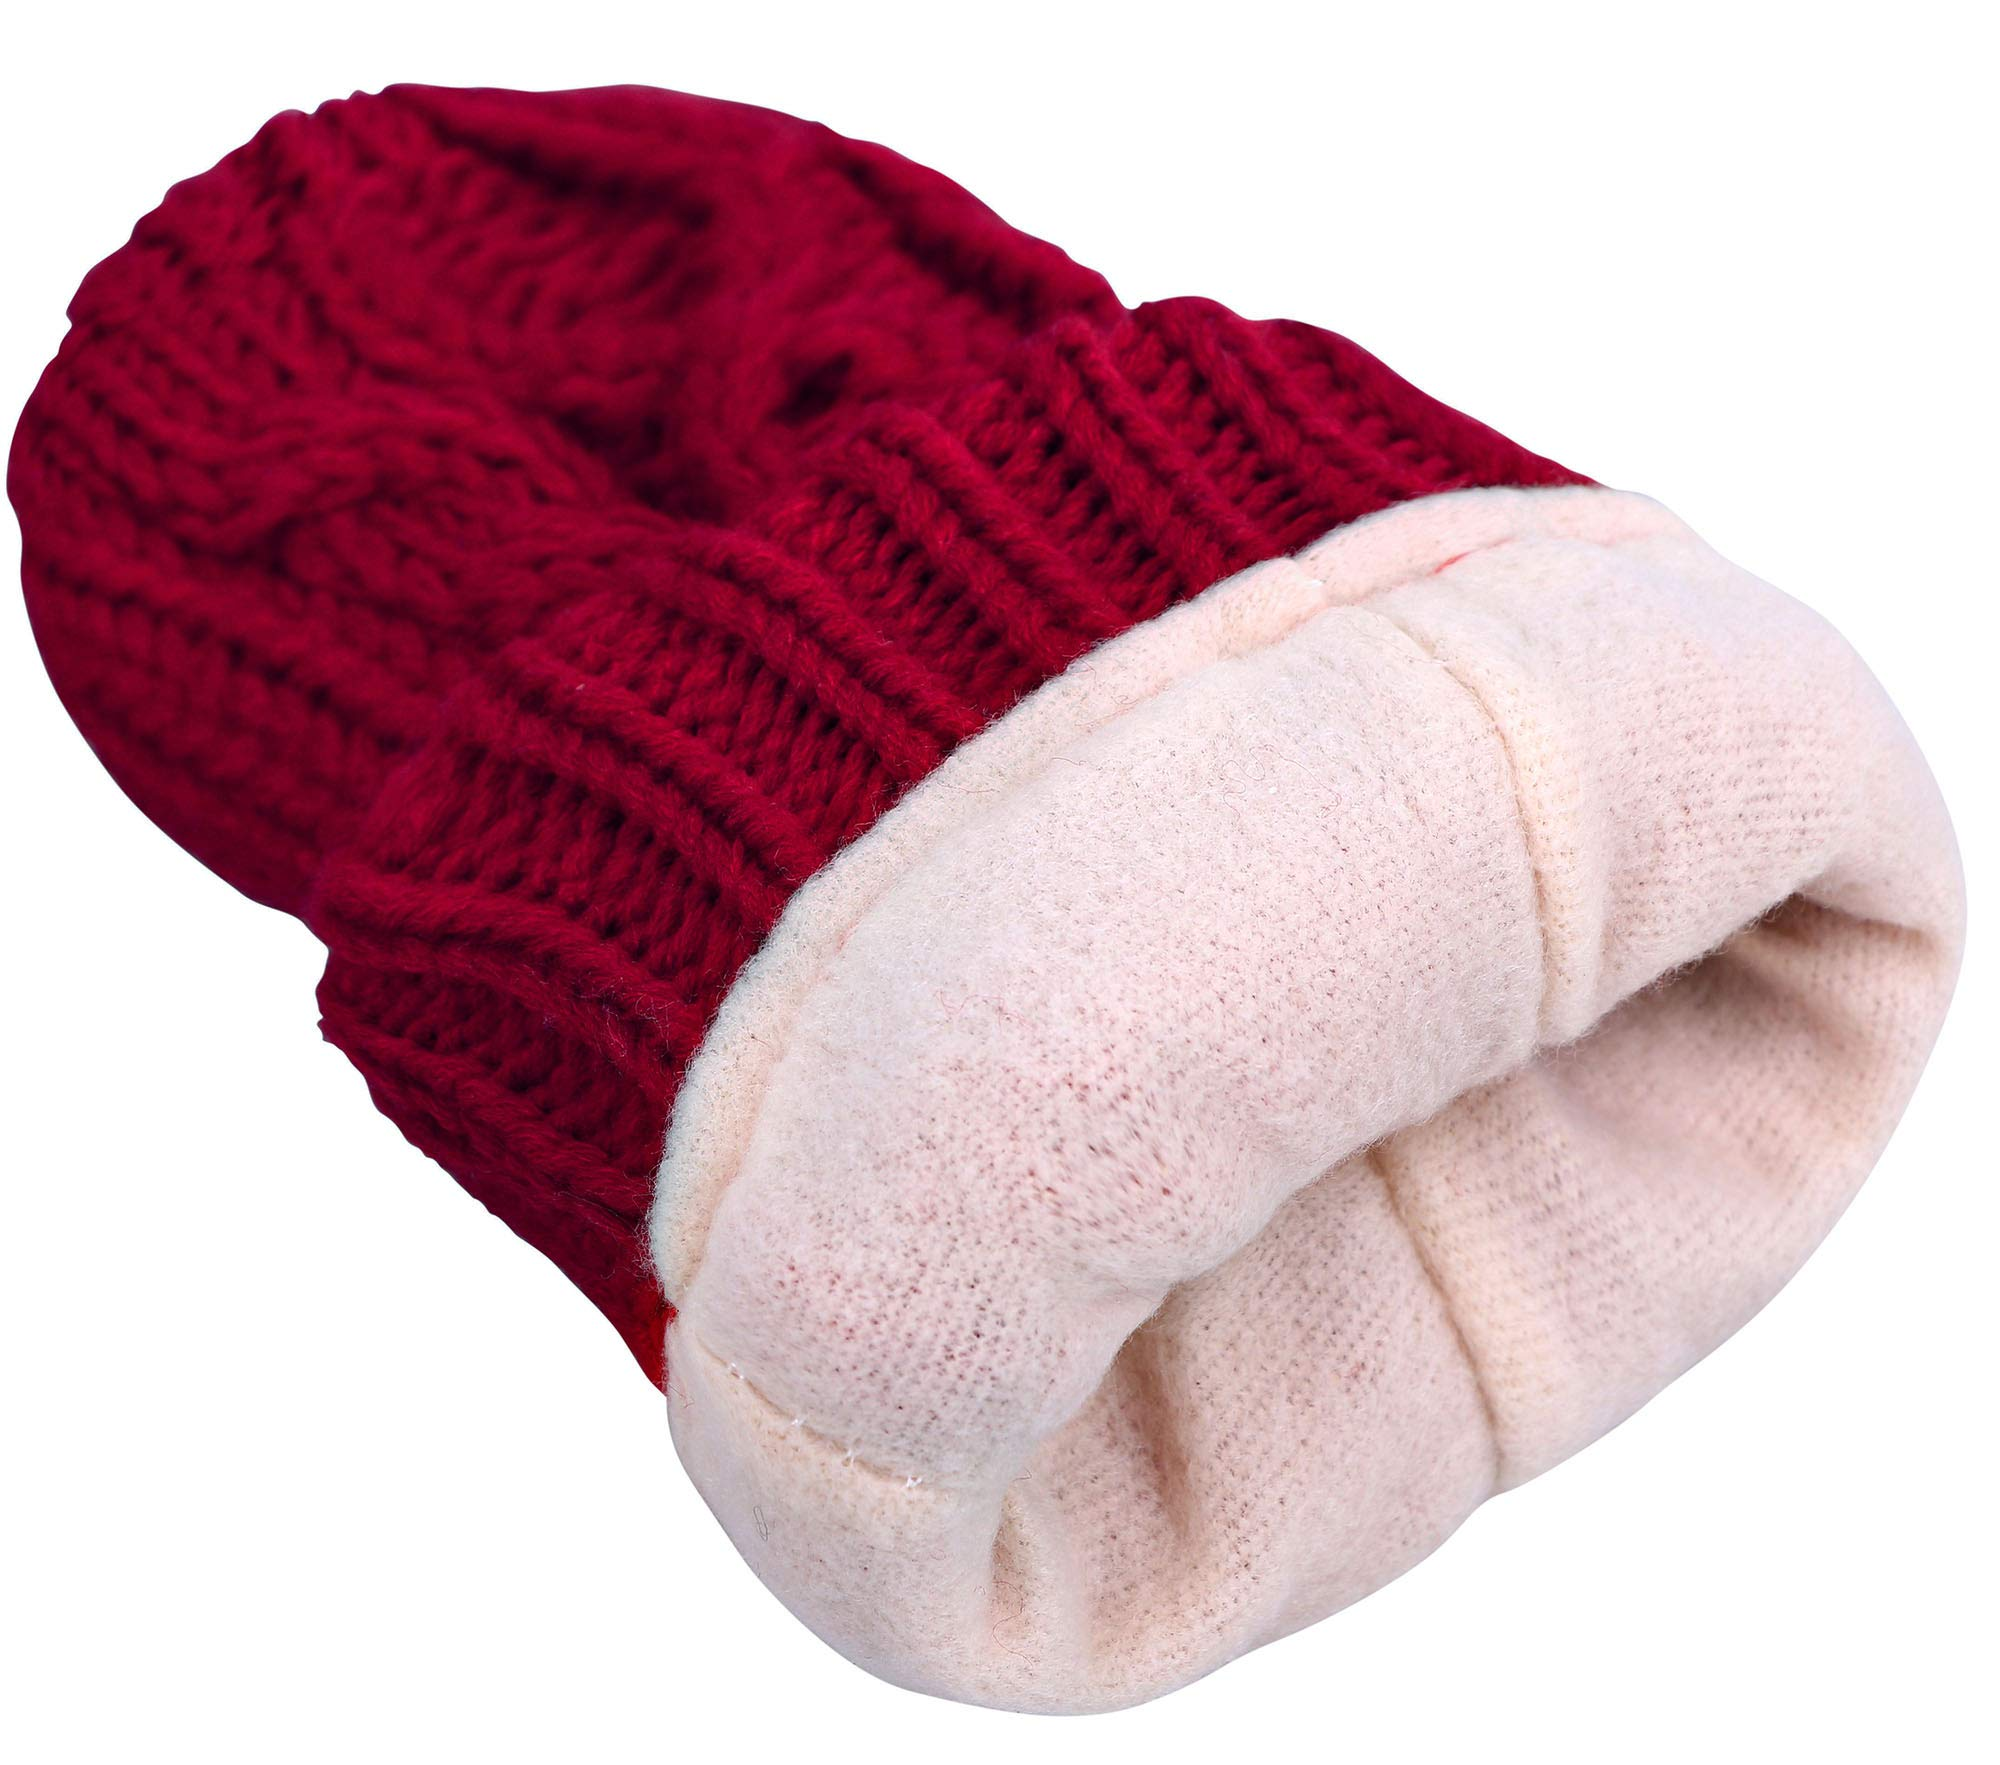 ANDORRA - 3 in 1 - Soft Warm Thick Cable Hat Scarf & Gloves Winter Set, Red by Andorra (Image #7)